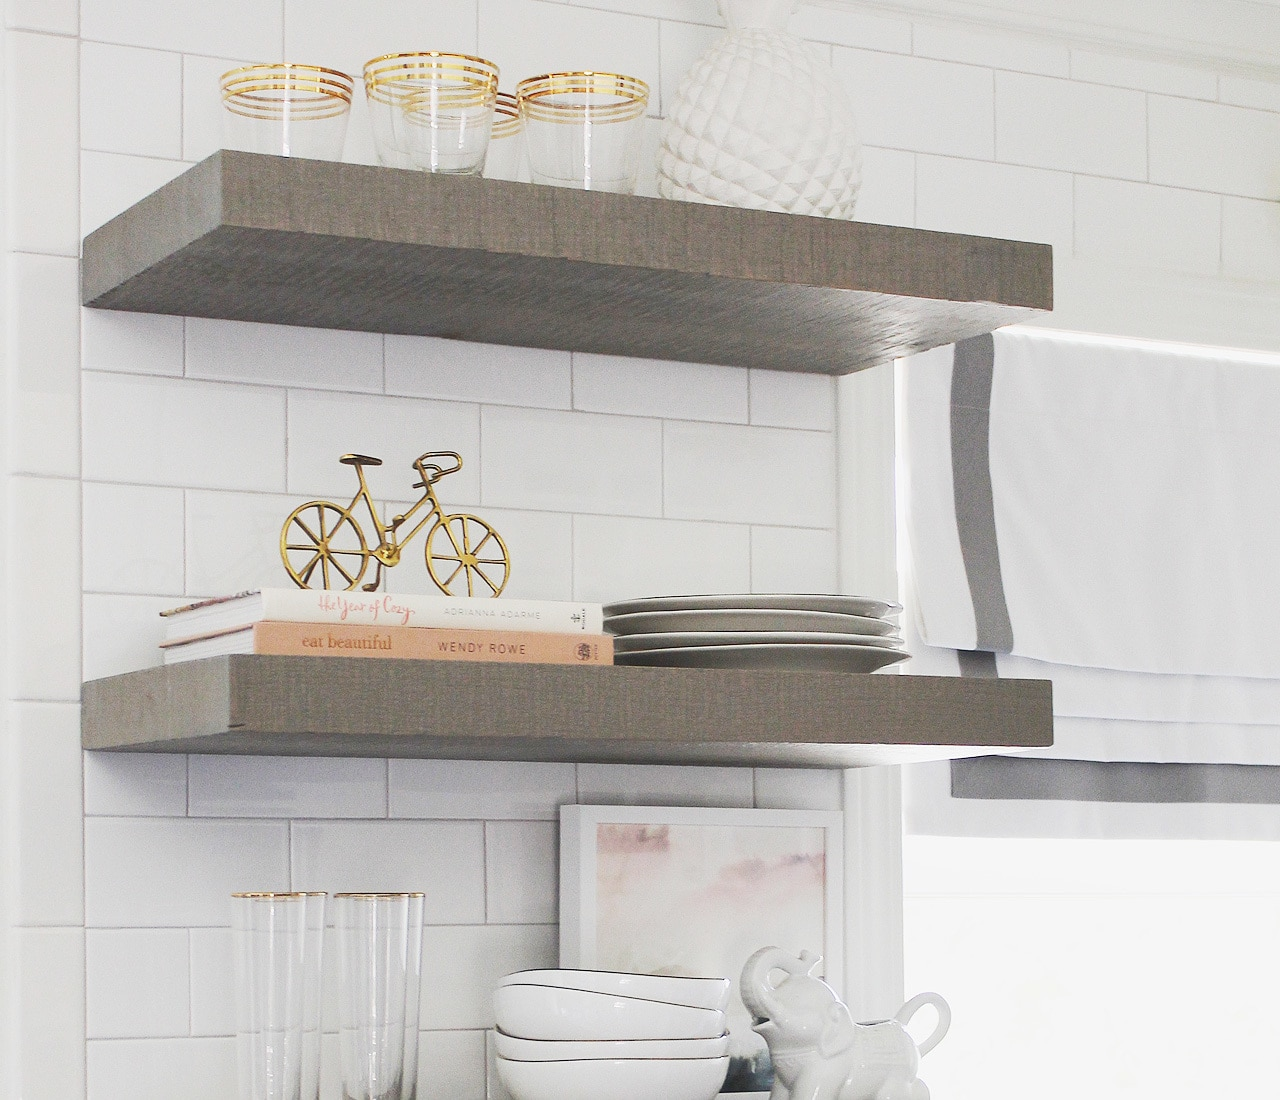 floating shelf bracket fits inch shelves gray kitchen light deep wall easily install with our steel stand portable island seating garage wire shelving systems bathroom glass